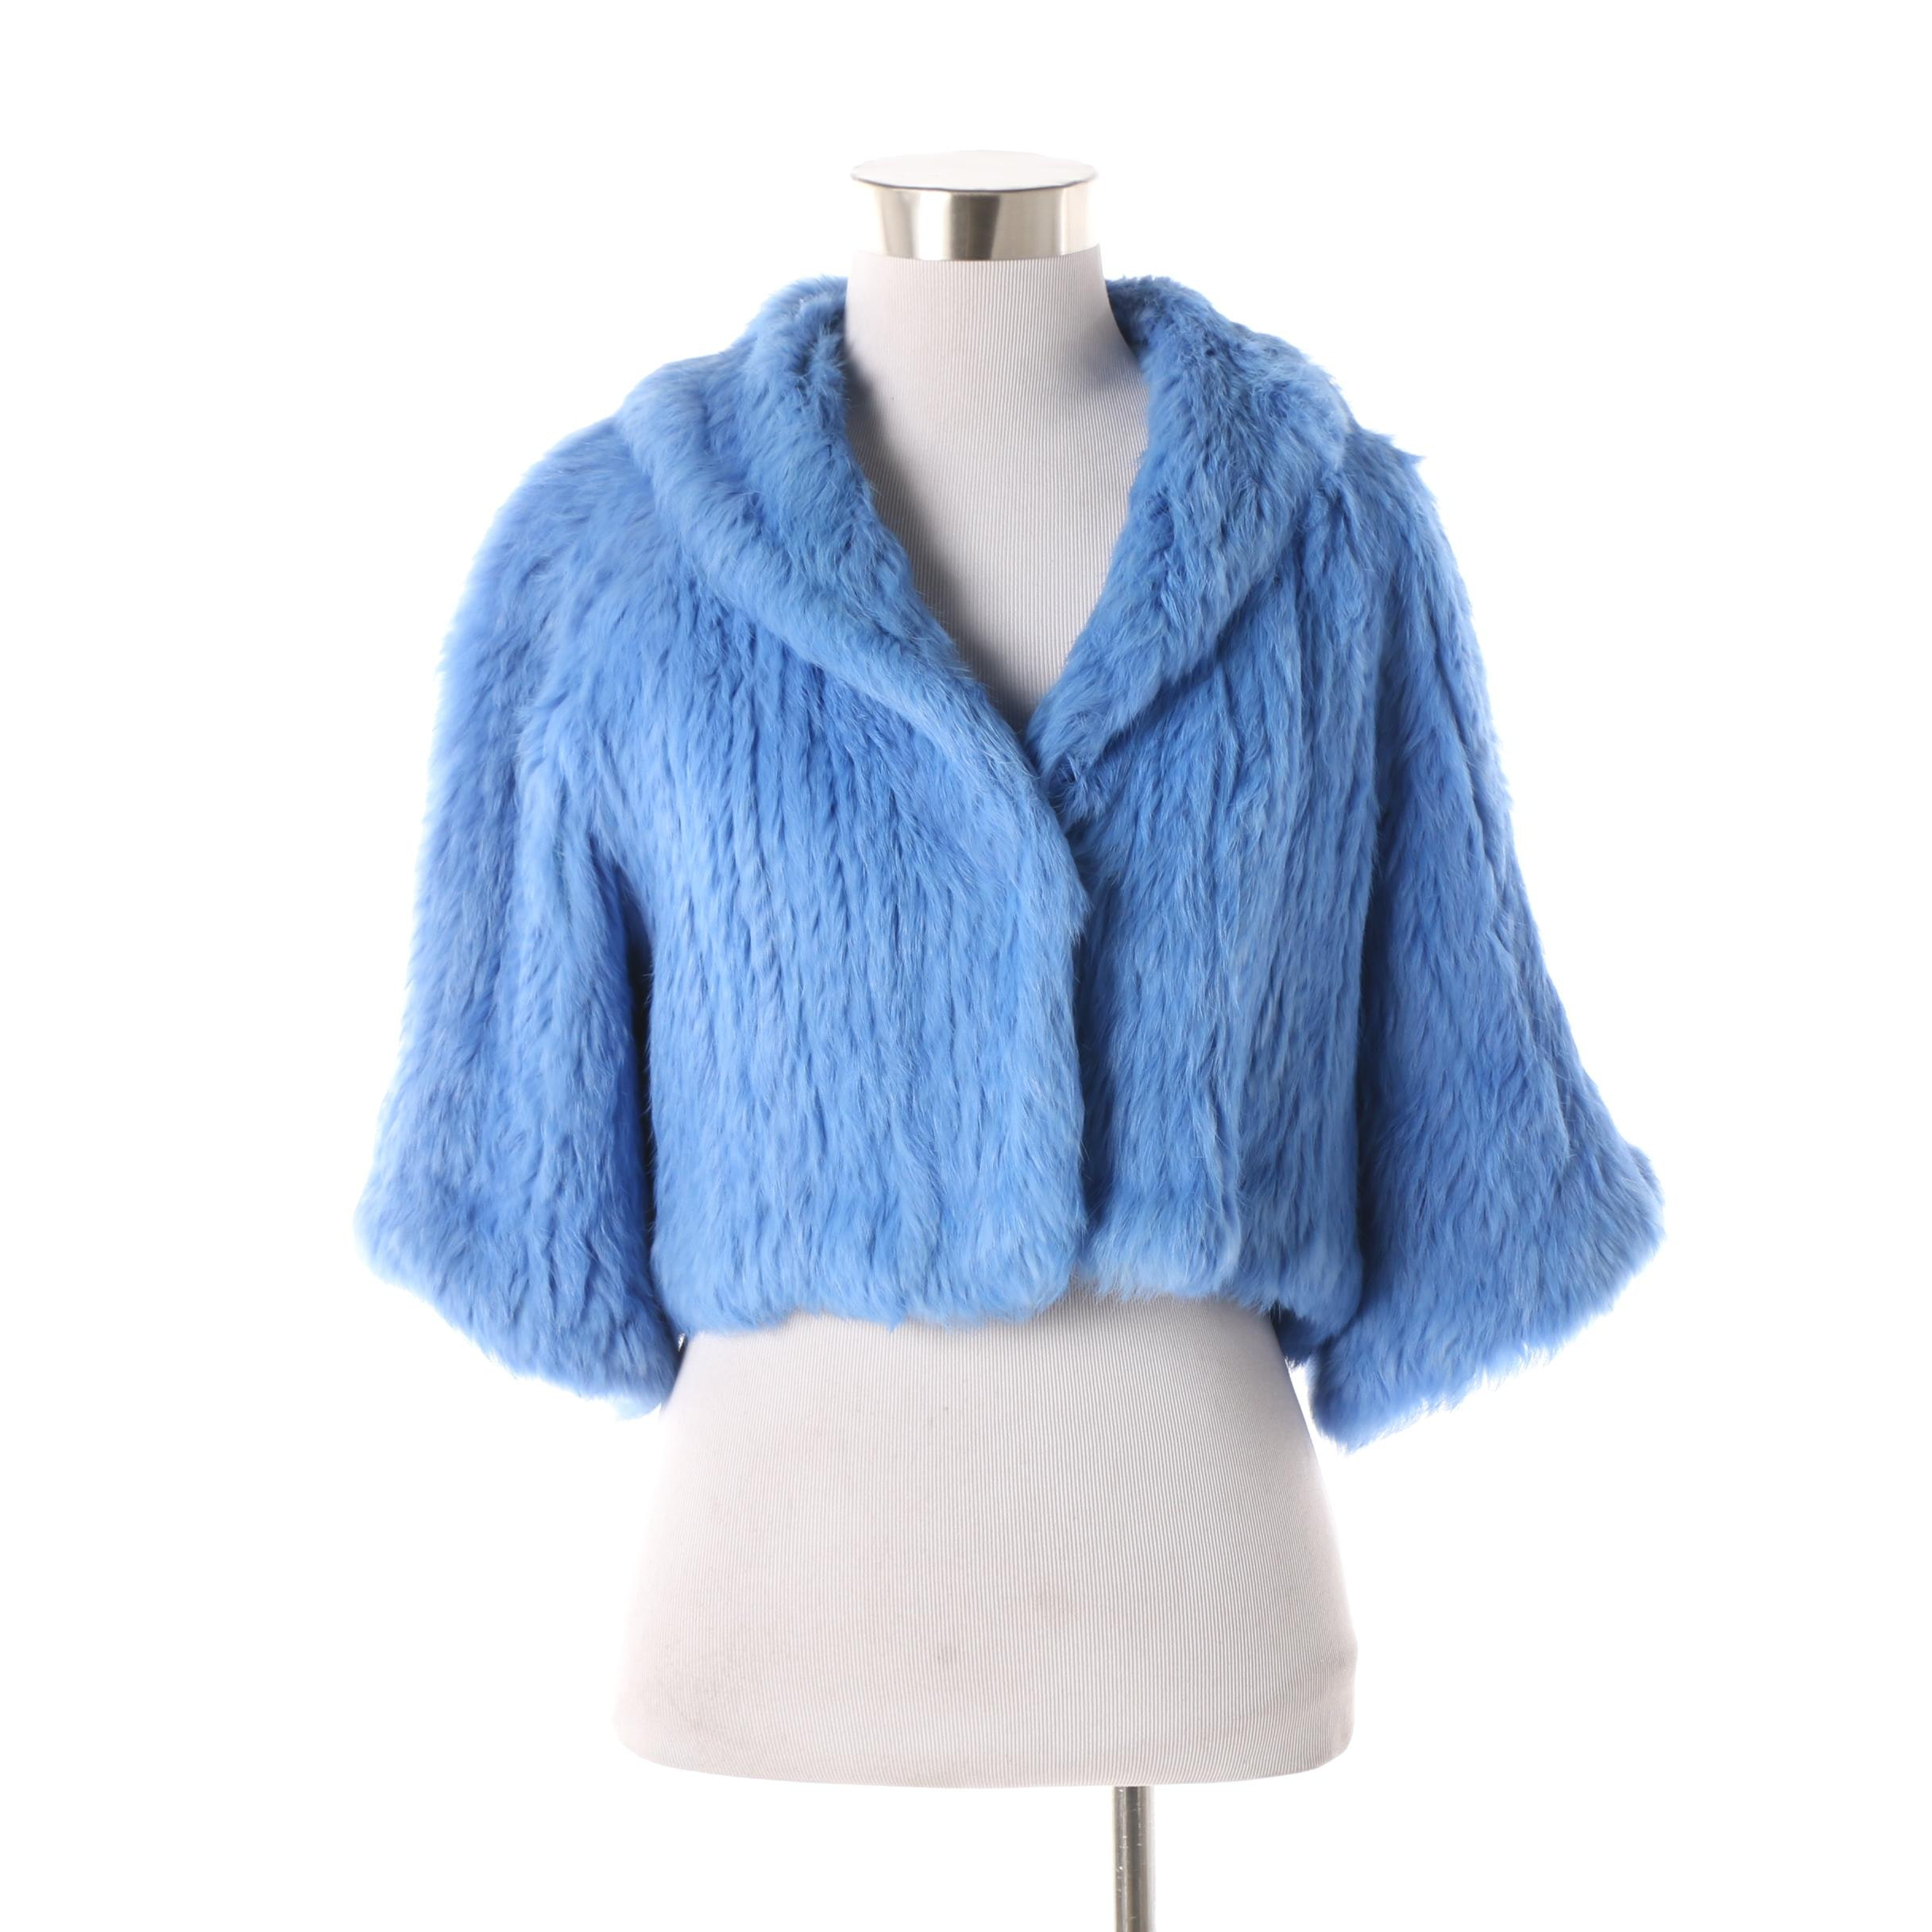 Sisters Outerwear Blue Knitted Rabbit Fur Shrug